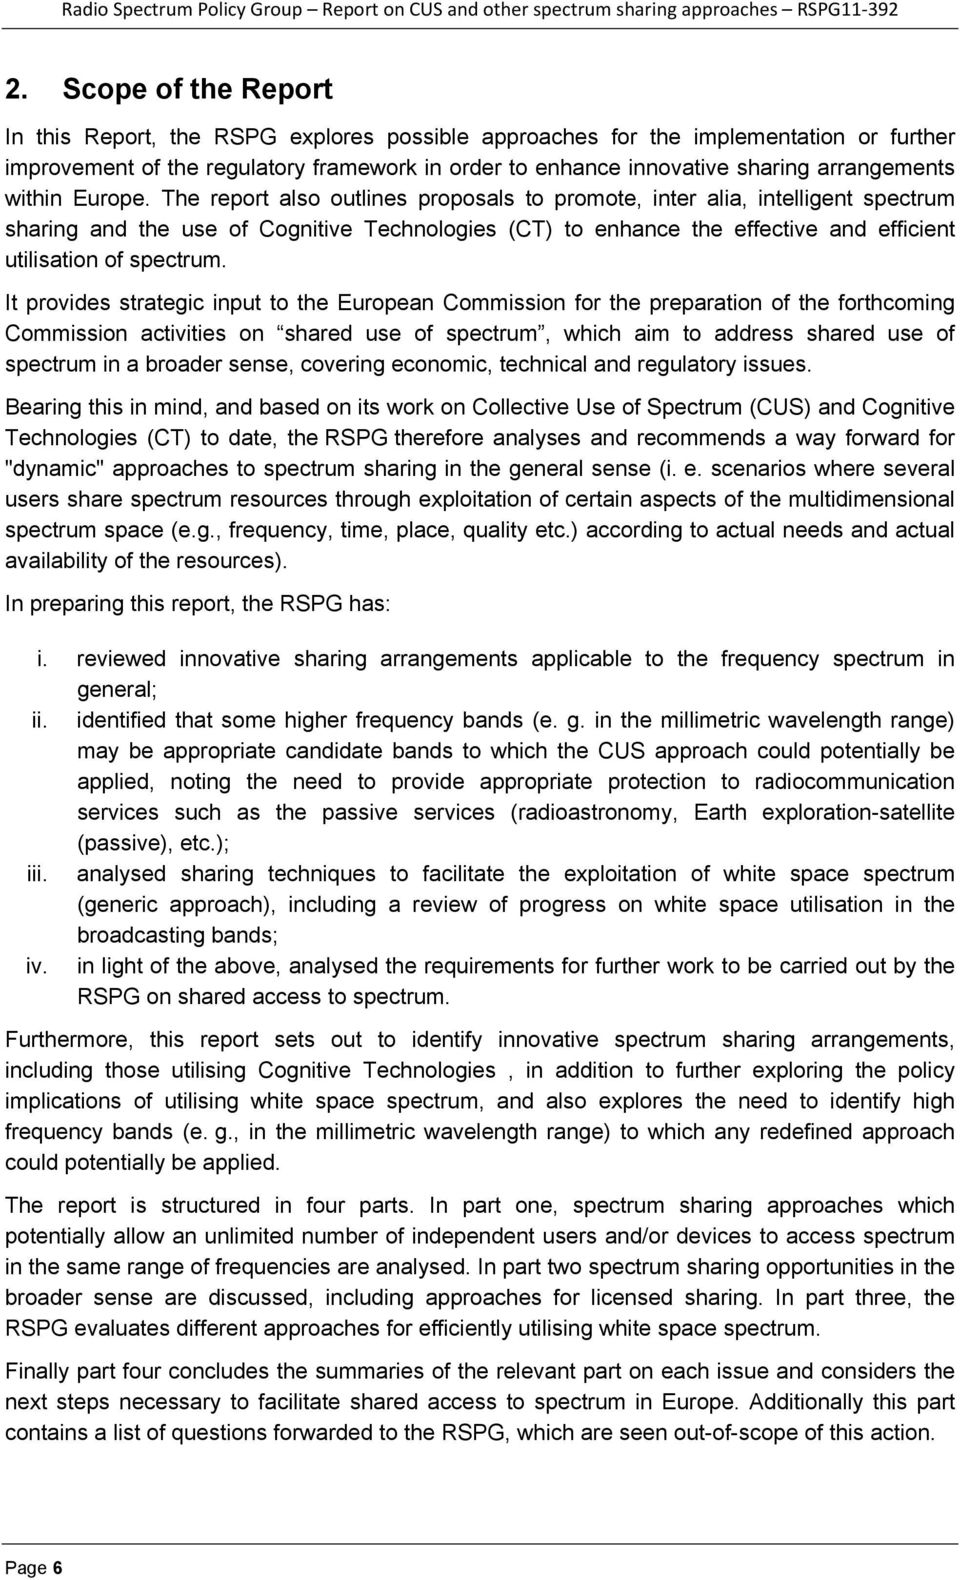 The report also outlines proposals to promote, inter alia, intelligent spectrum sharing and the use of Cognitive Technologies (CT) to enhance the effective and efficient utilisation of spectrum.